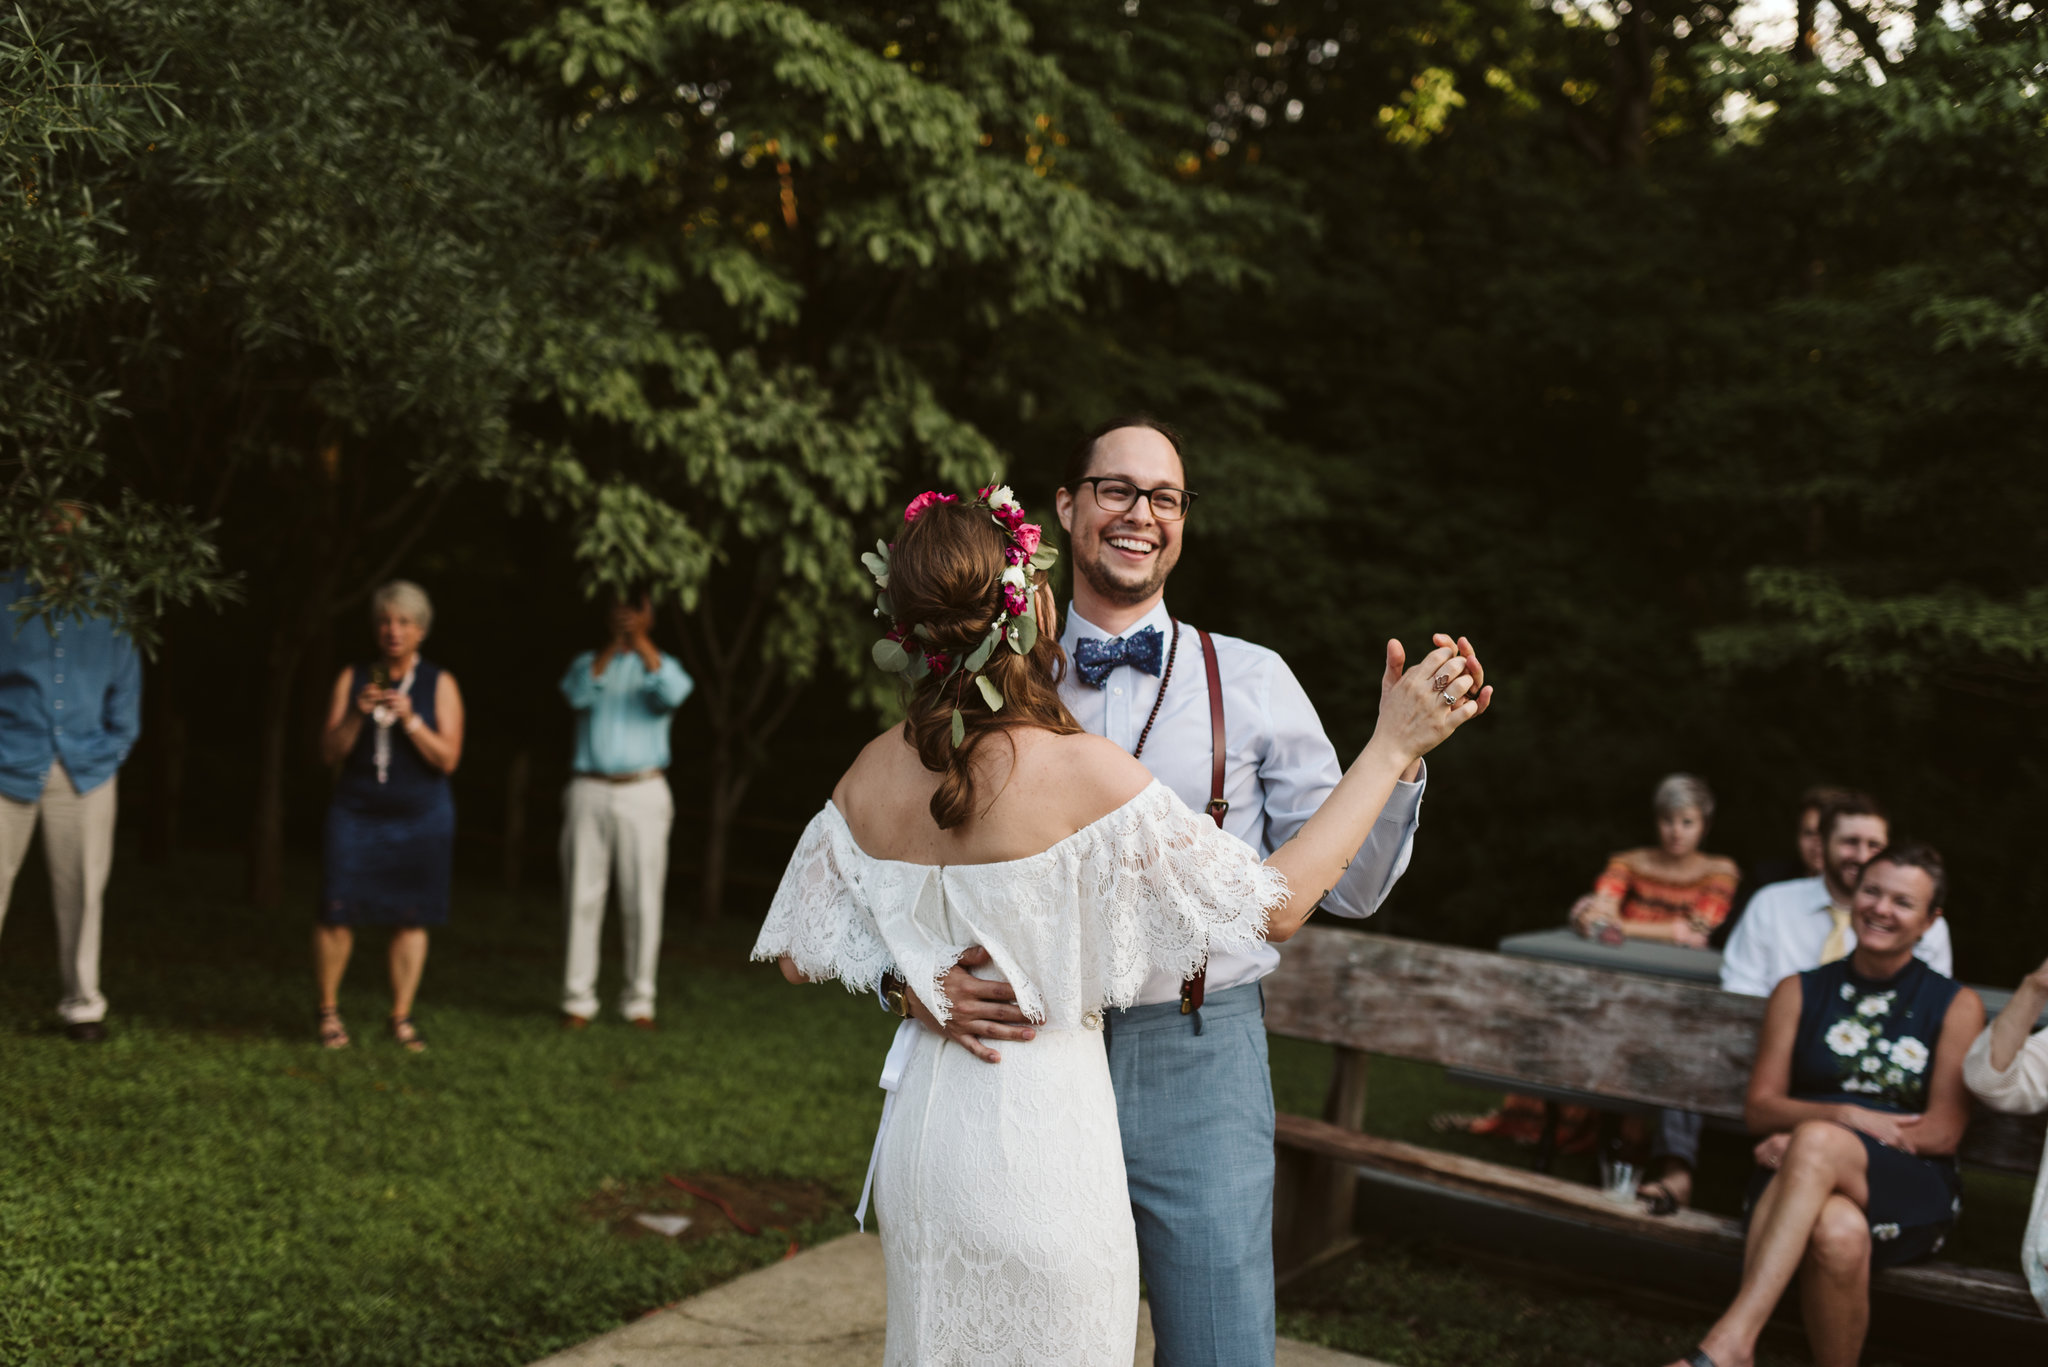 Annapolis, Quaker Wedding, Maryland Wedding Photographer, Intimate, Small Wedding, Vintage, DIY, First Dance, Bride and Groom Dancing Together